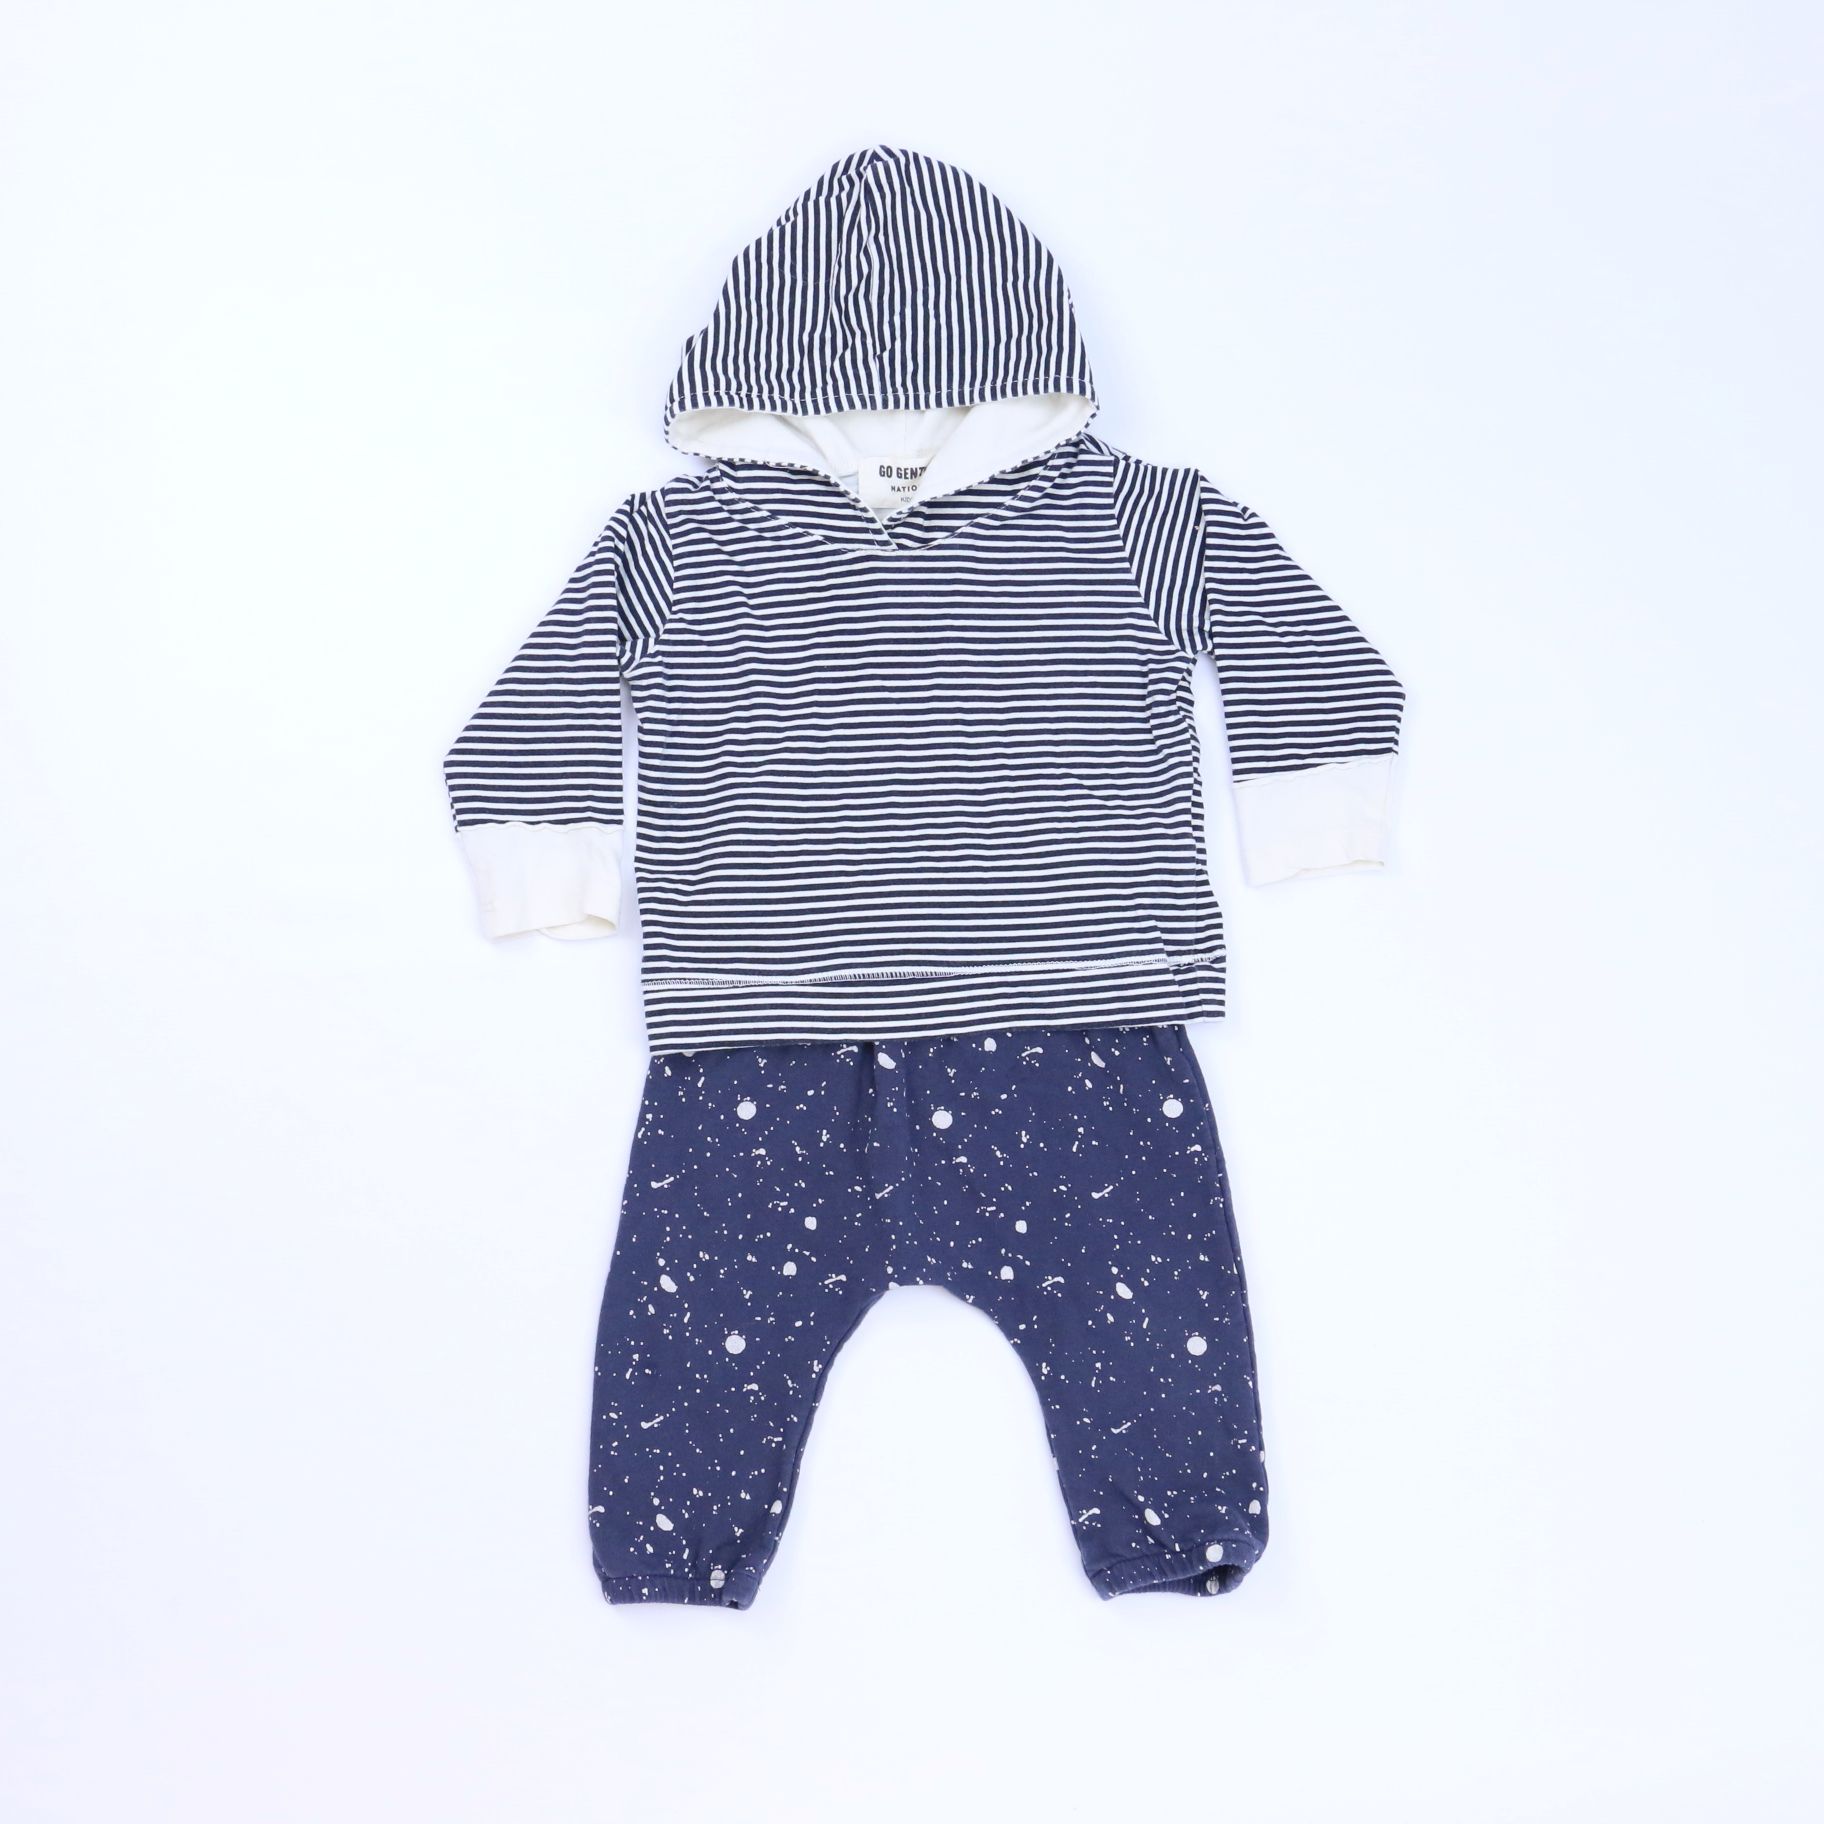 9cfe09a51 2-pieces Apparel Sets size  6-12 Months - The Swoondle Society